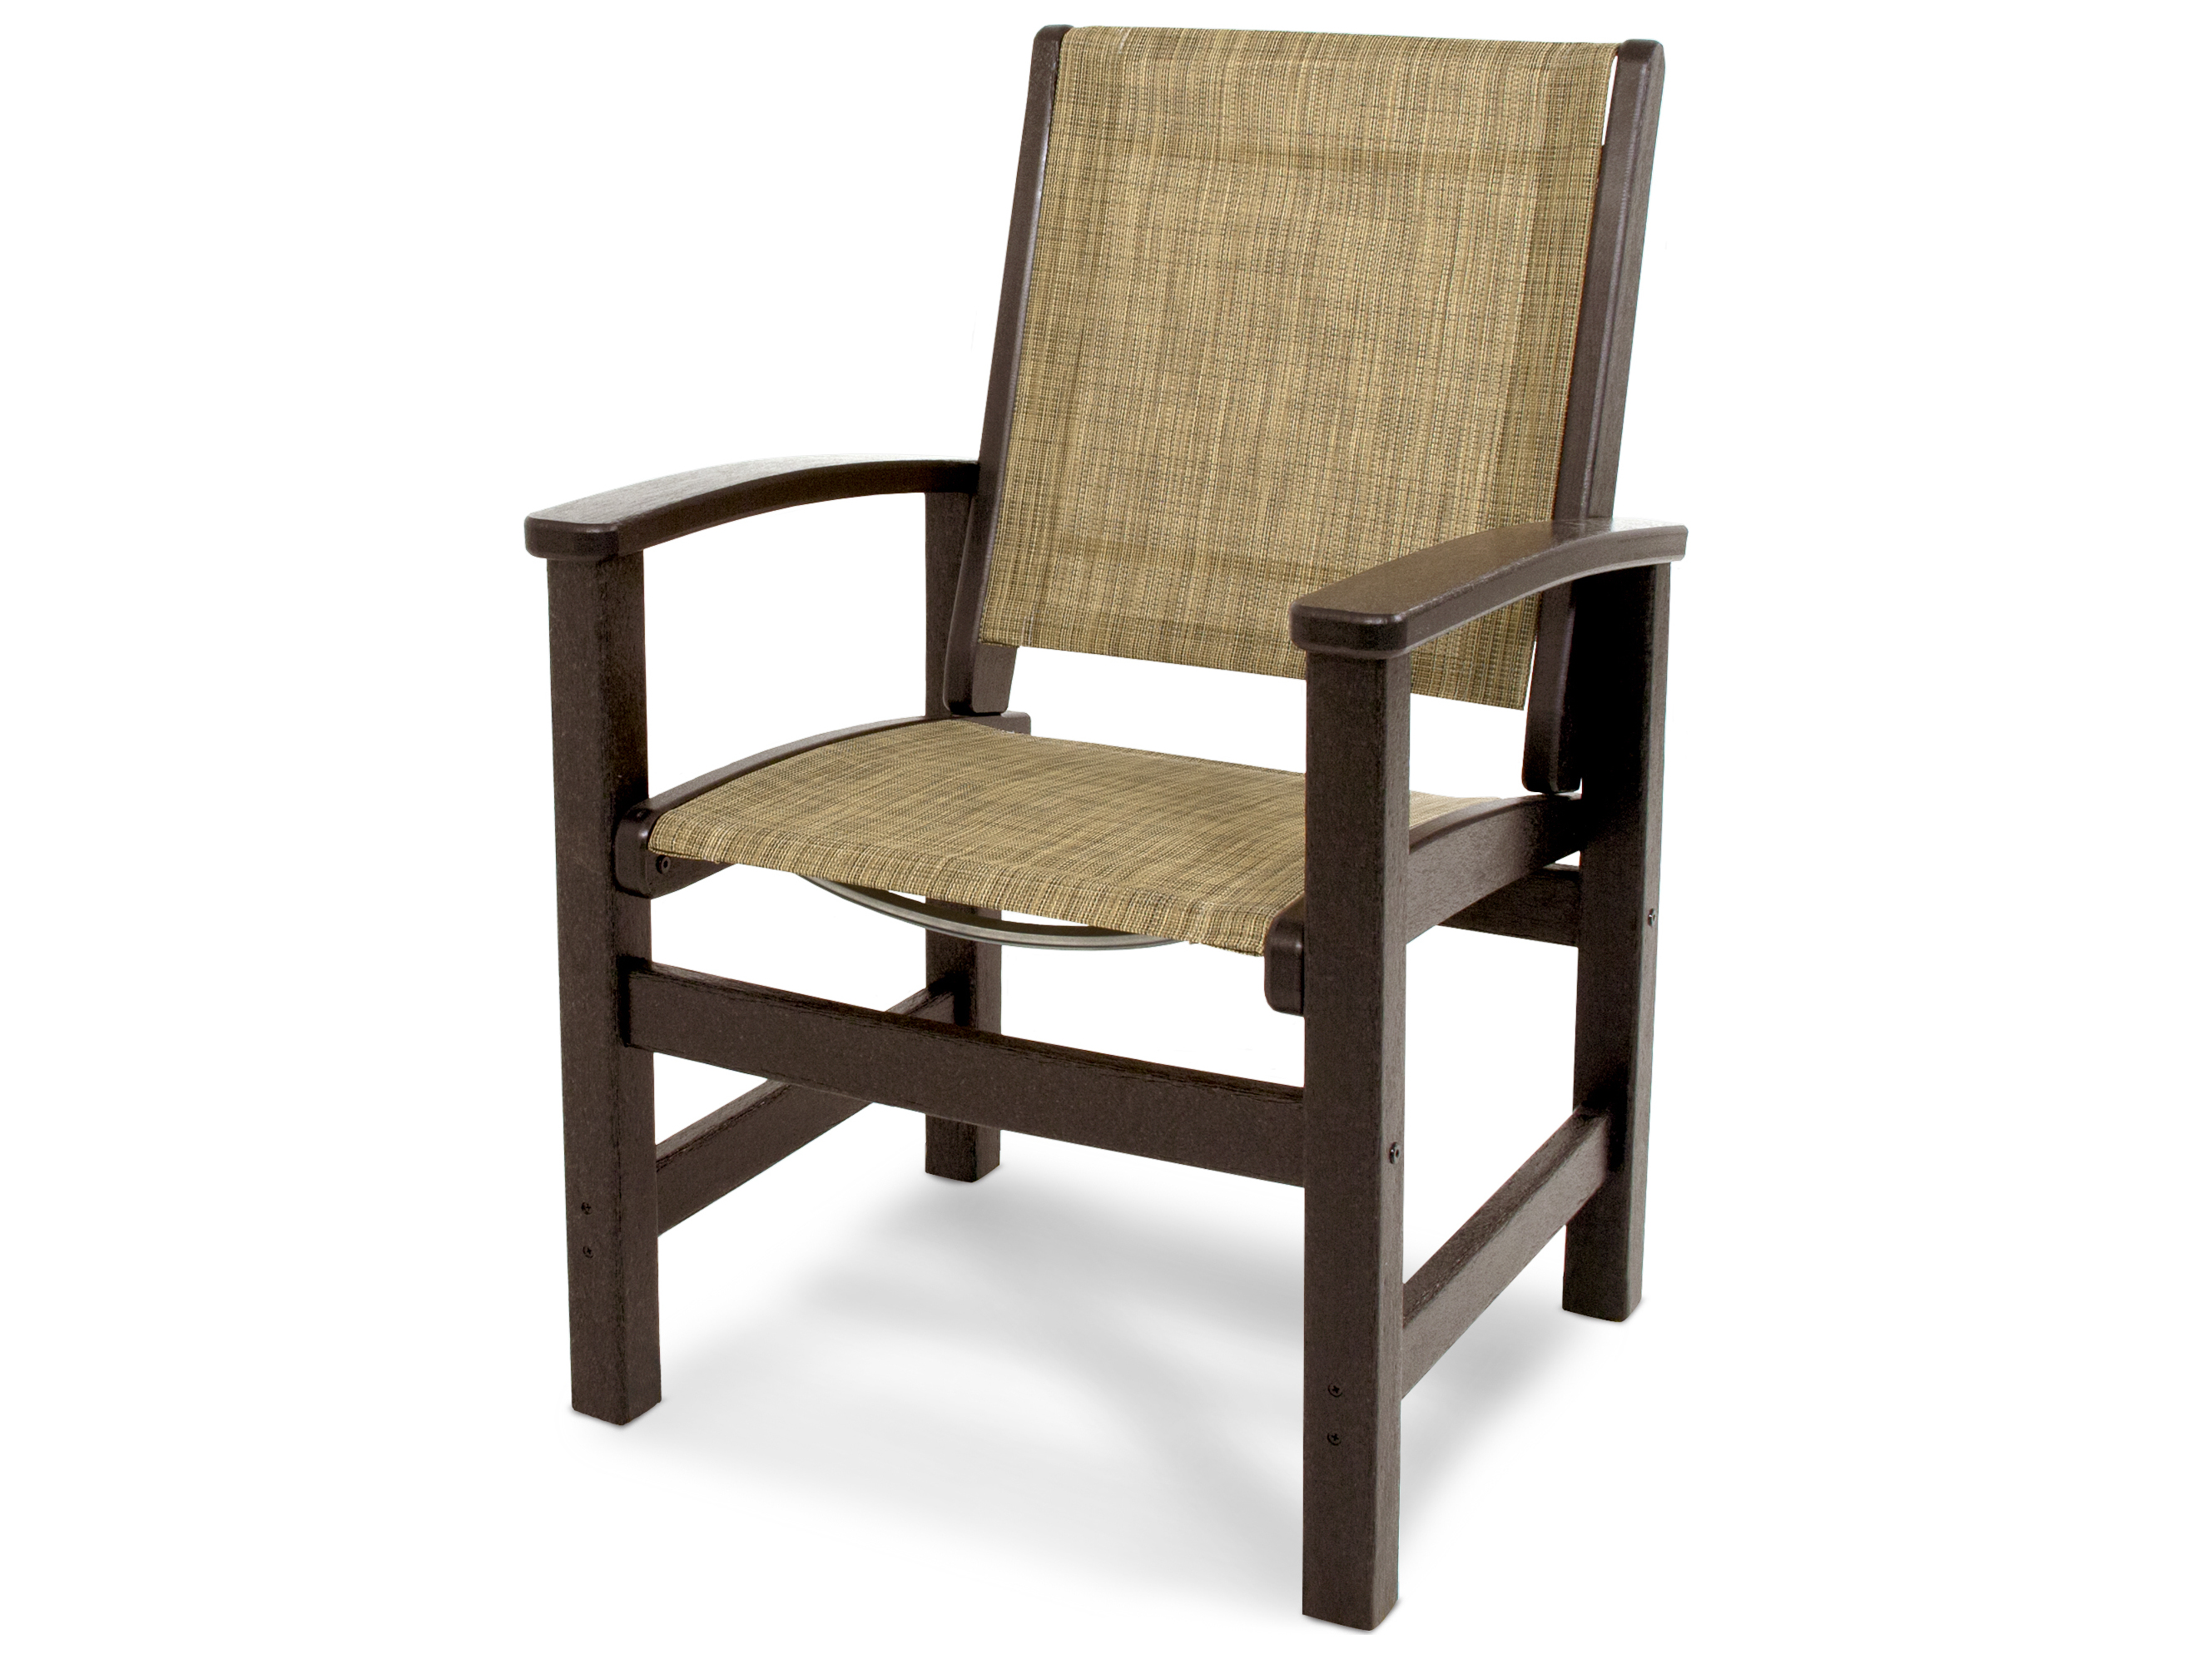 Plastic Dining Chairs Polywood Coastal Recycled Plastic Dining Chair 9010